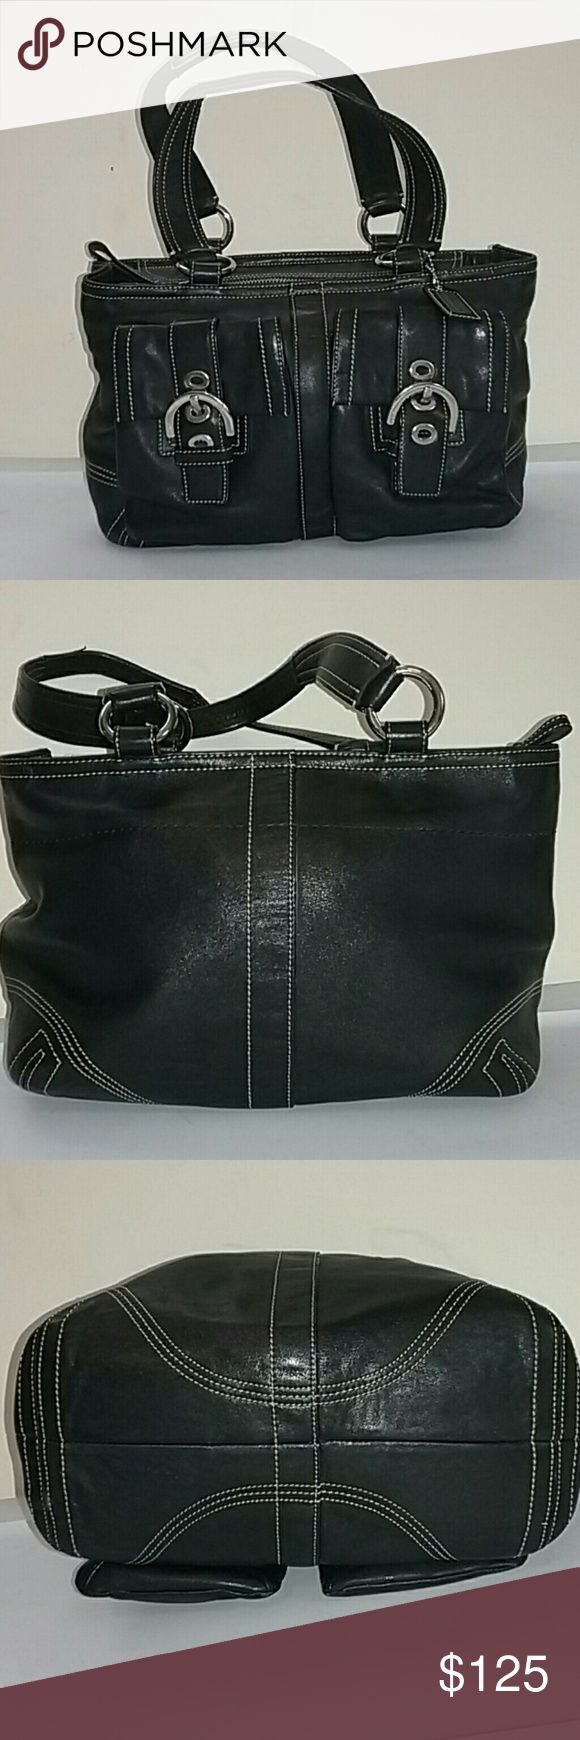 """Coach Black Leather Soho Double Pocket Satchel Coach black leather satchel with Double buckle front pockets (buckles hide easy to access  magnetic snap pockets big enough for many cell phones).  Approximately 11"""" x 8"""" x 4.5"""". Strap stop 7"""".  Two interior slip pickets and one interior zippered pocket.  Snaps on side near ends of top zipper. EUC. Very slight signs of use on ring hardware,  no other issues.  Very nice bag! Feel free to make an offer! Coach Bags Satchels"""